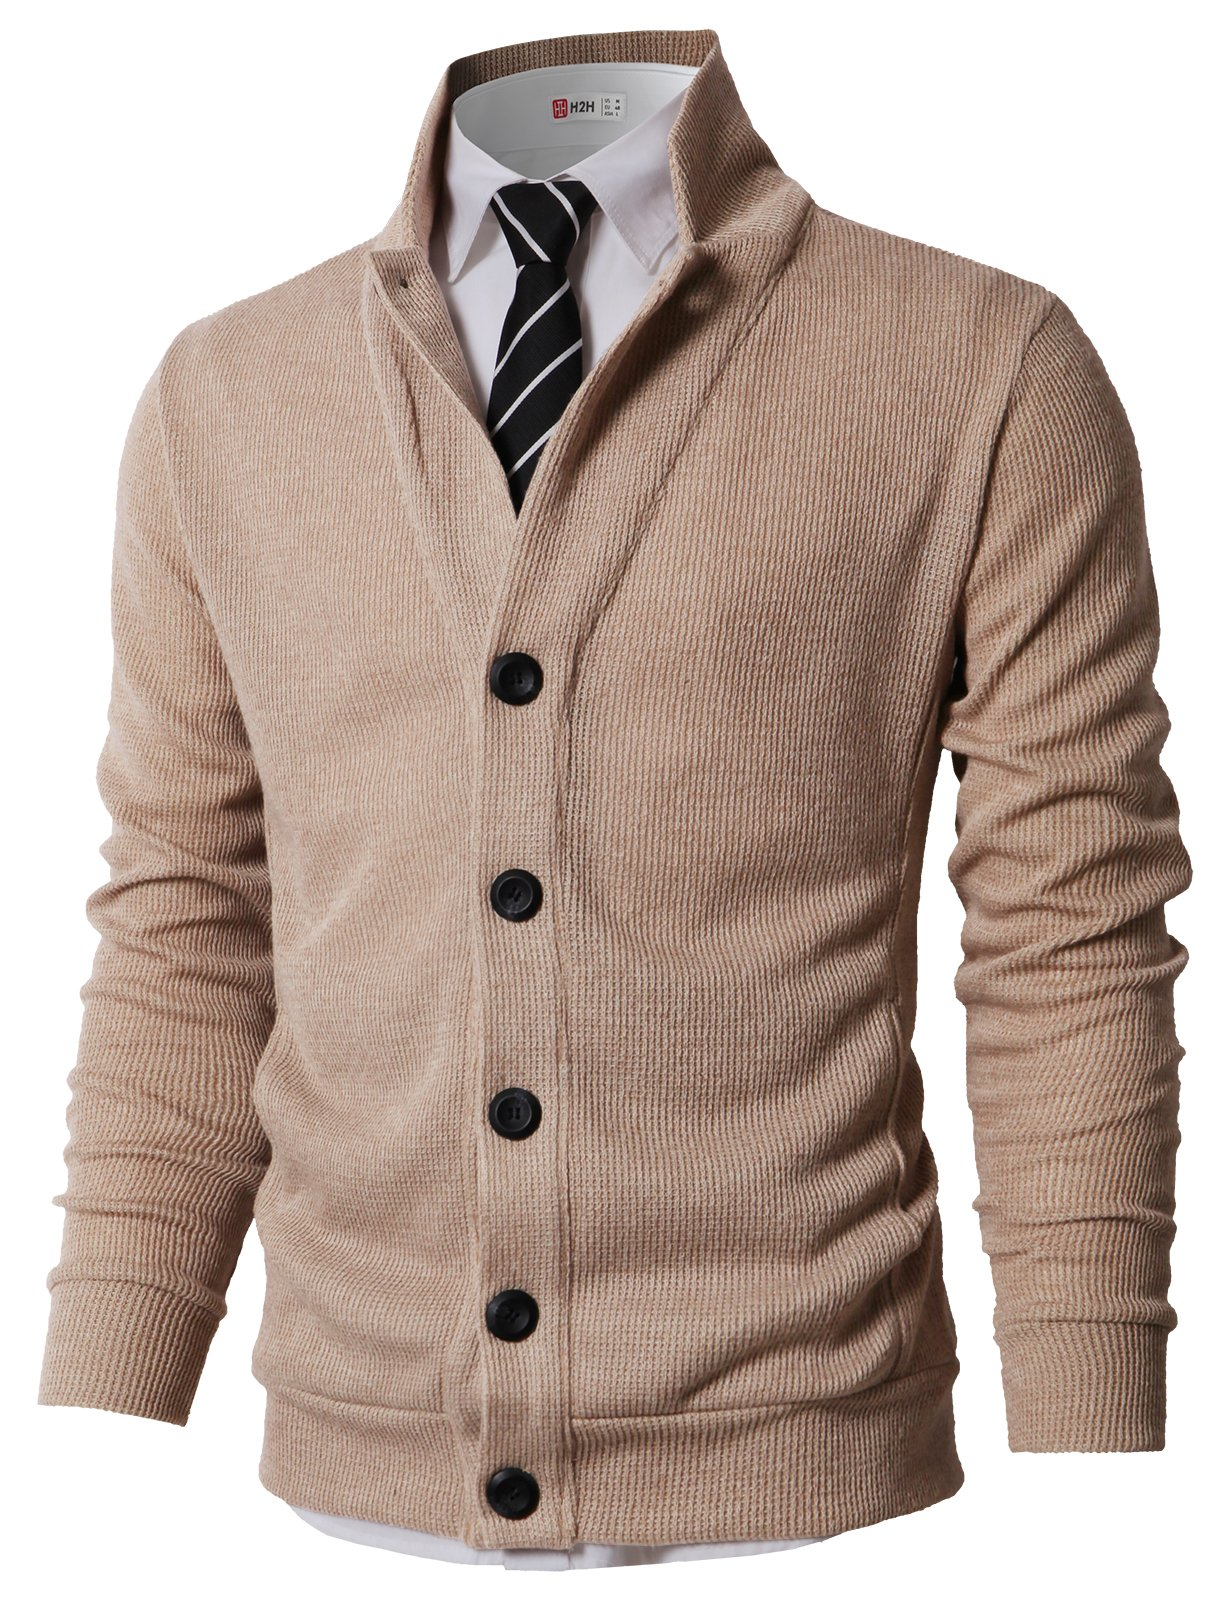 H2H Mens Casual Stand Collar Cable Knitted Button Down Cardigan Sweater Beige US L/Asia XL (KMOCAL0182)